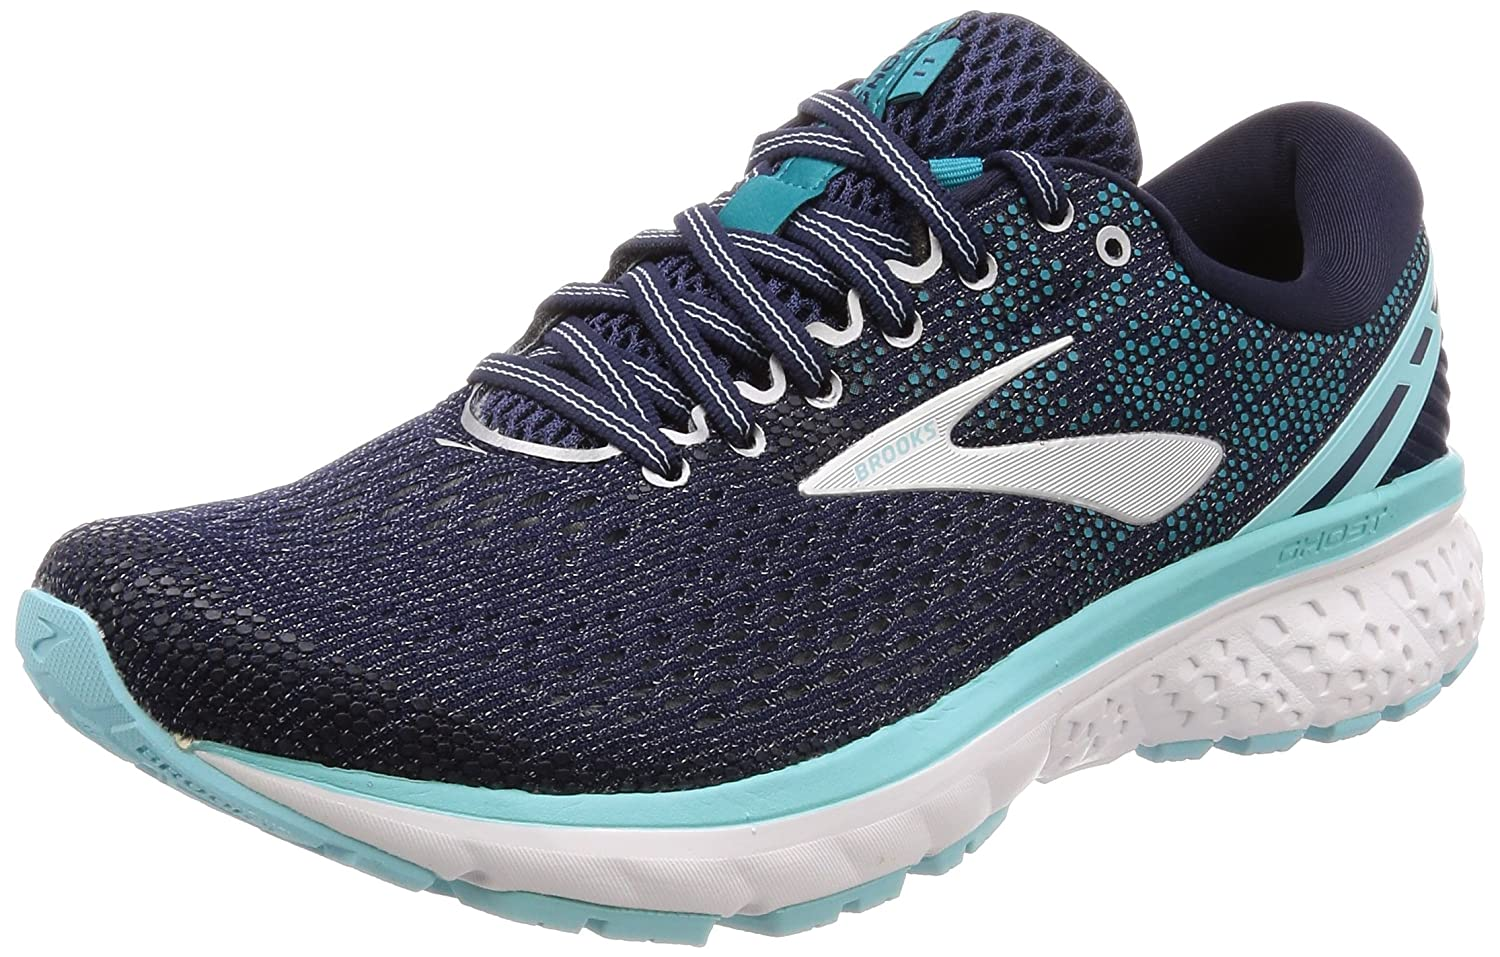 Brooks Women's Ghost 11 Running Sneakers B077QTMPQV 9 B(M) US|Navy/Grey/Blue